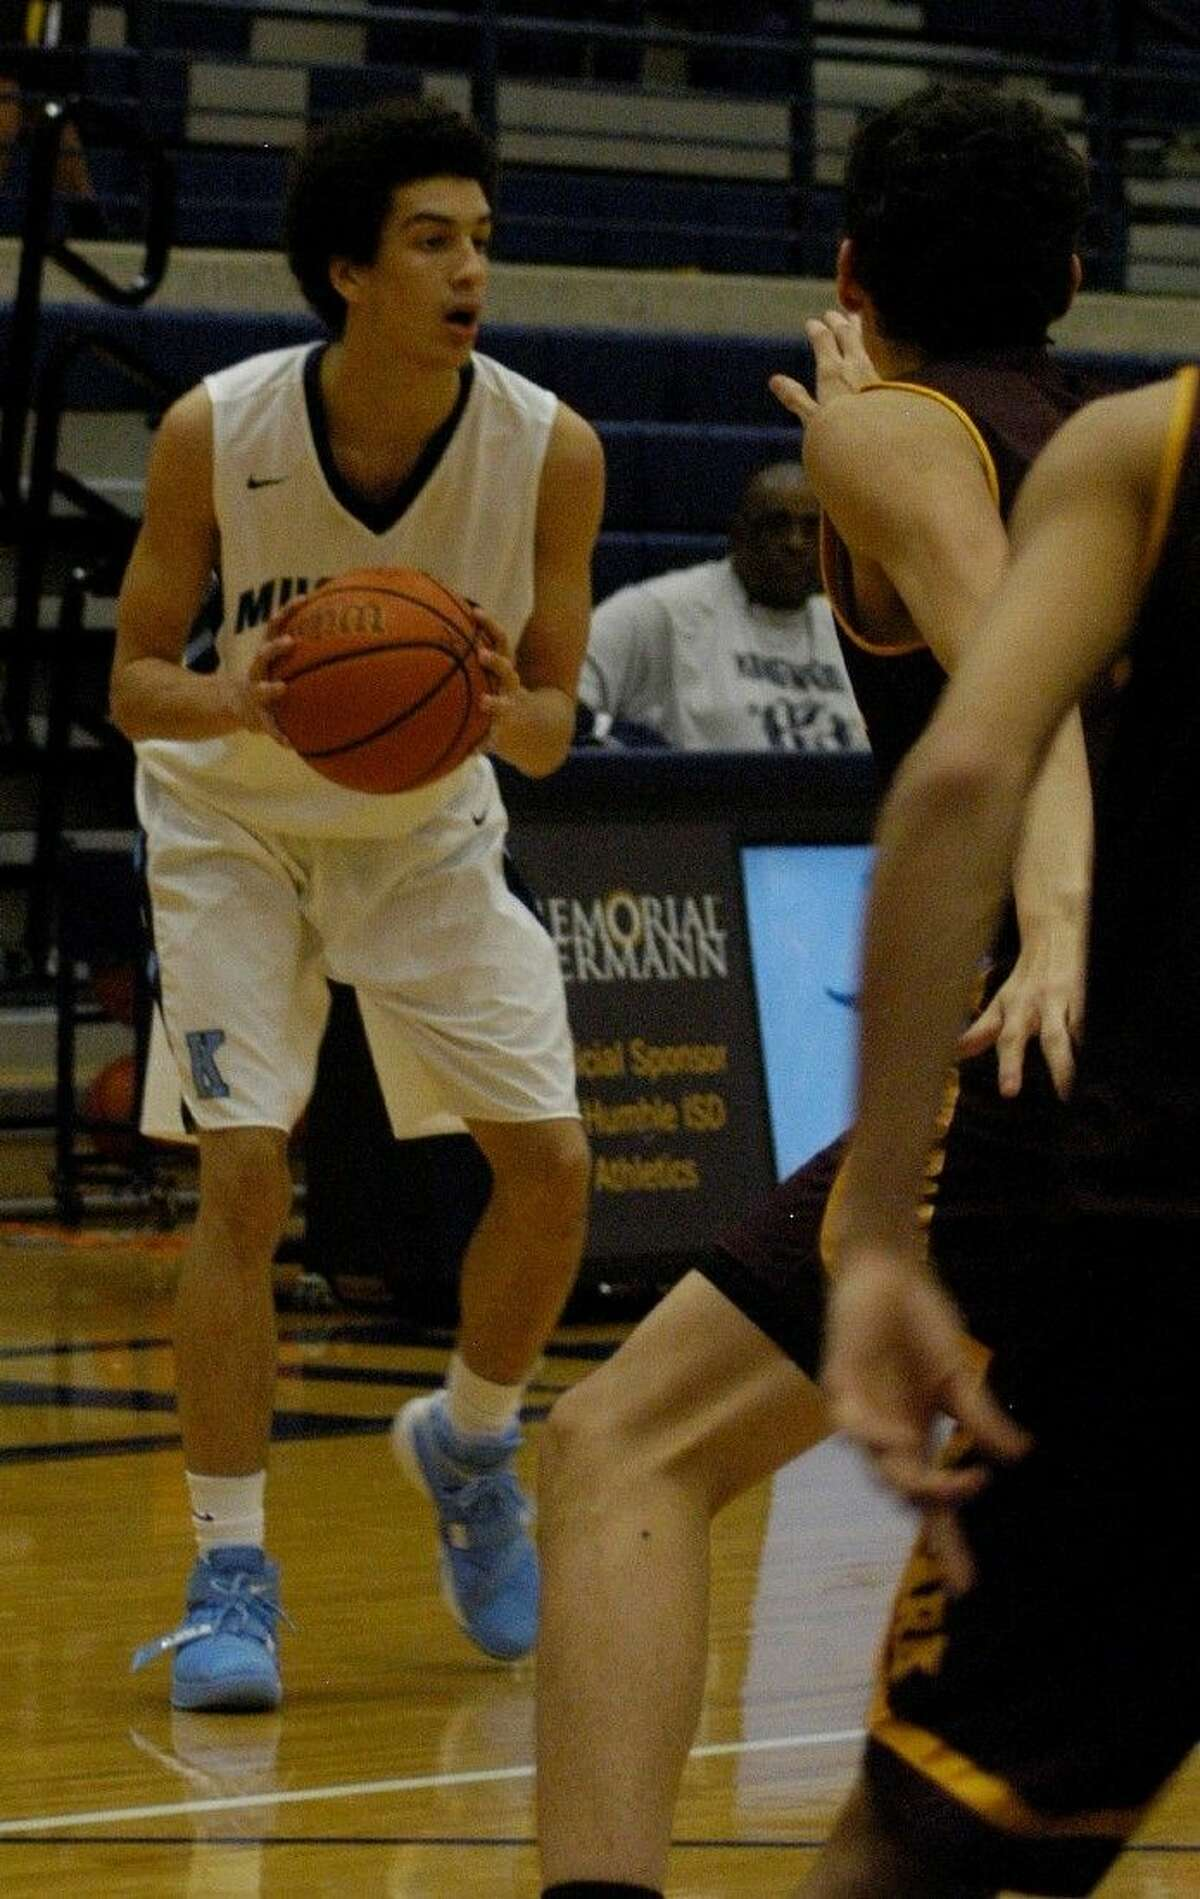 Kingwood's Deven Gould (35) prepares to drive the ball as Kingwood defeating Deer Park 55-40 on Tuesday, Dec. 8, 2015 at Kingwood High School.